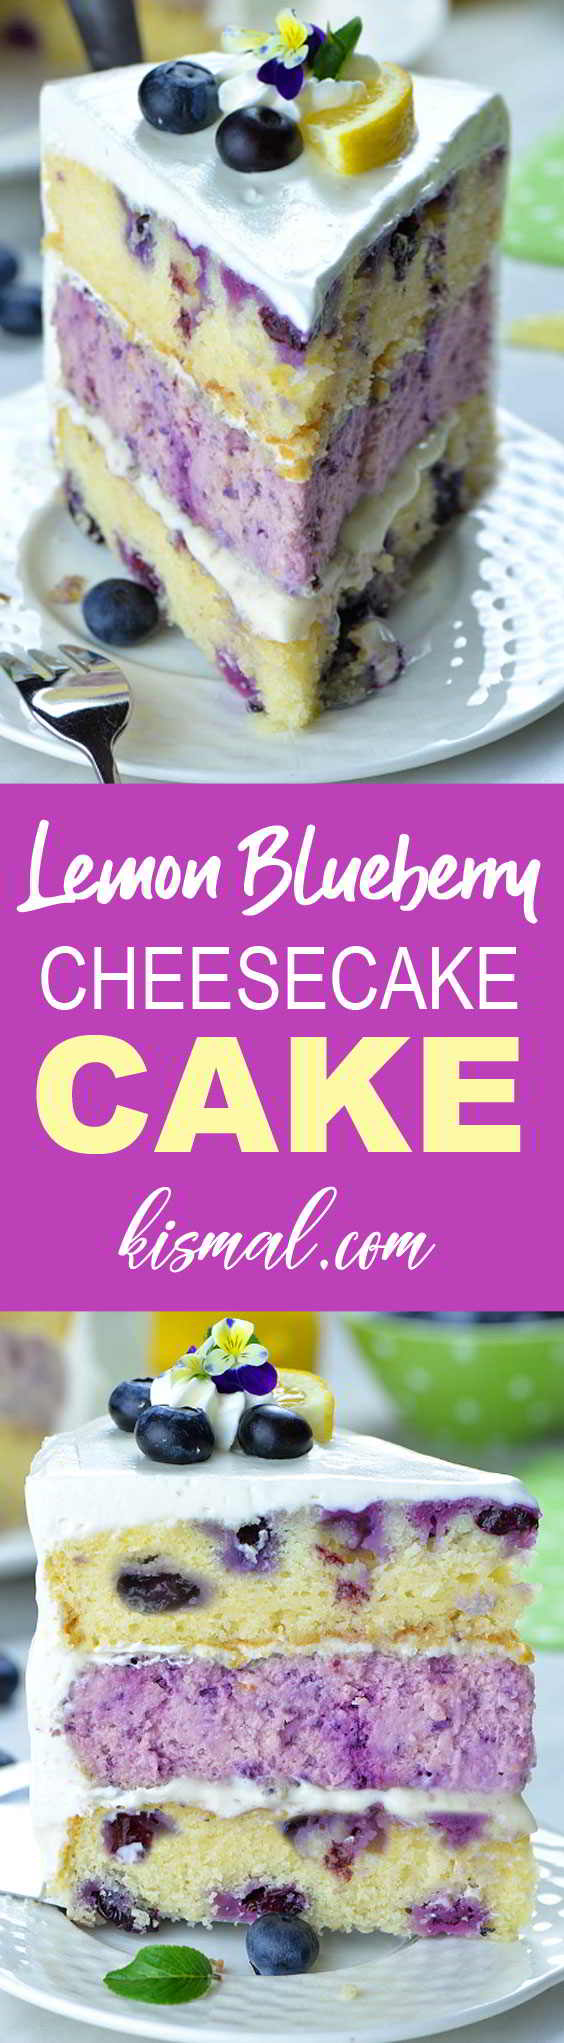 Lemon Blueberry Cheesecake Cake - Super Delicious